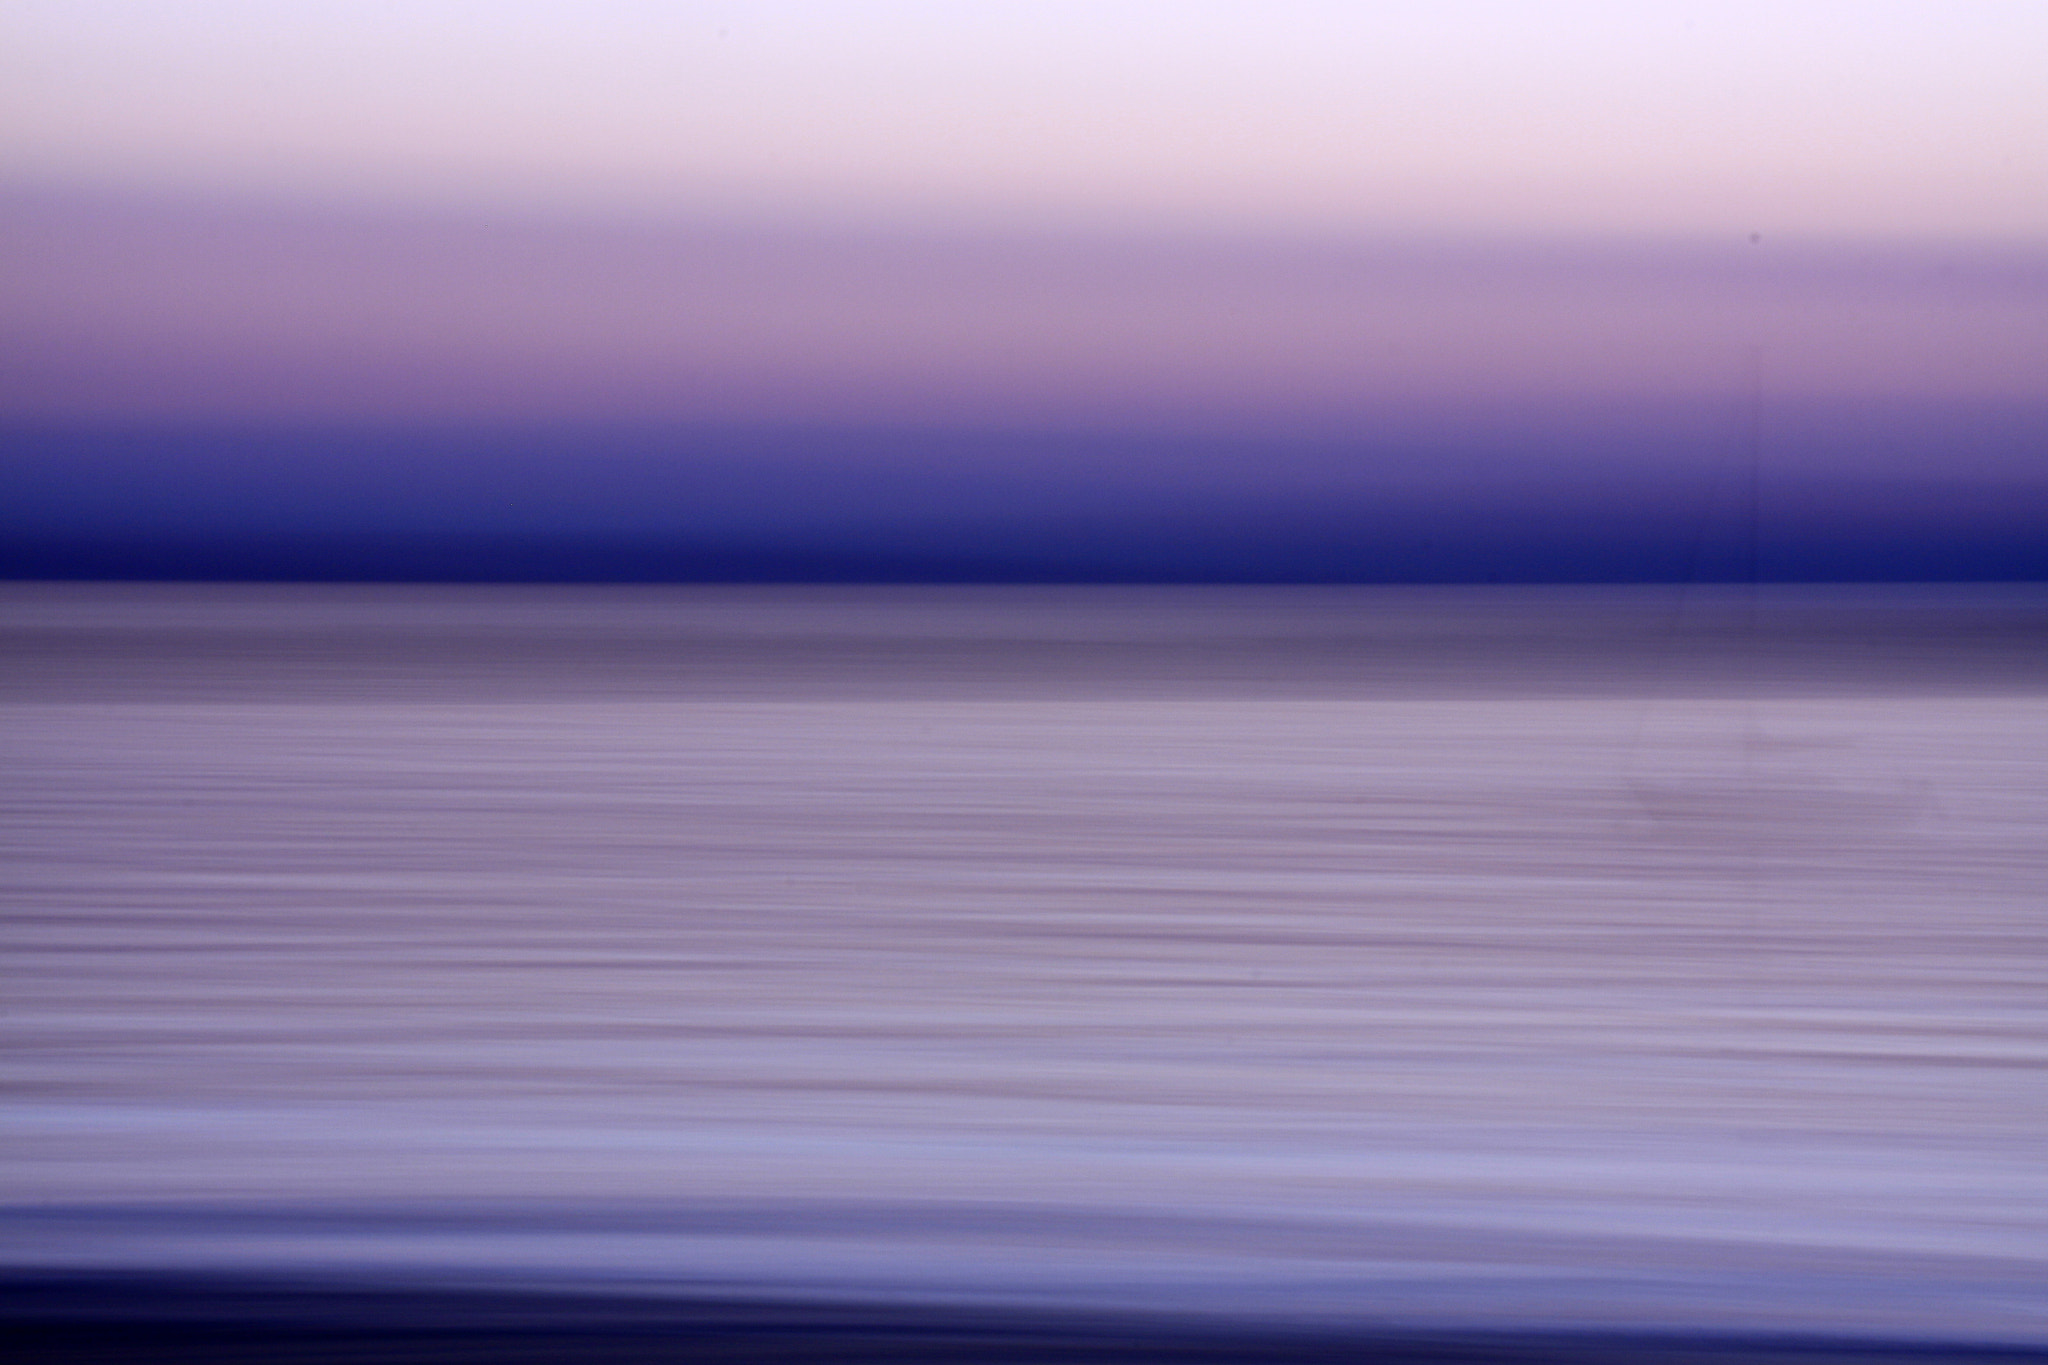 Photograph Layers by Michael Rollins on 500px